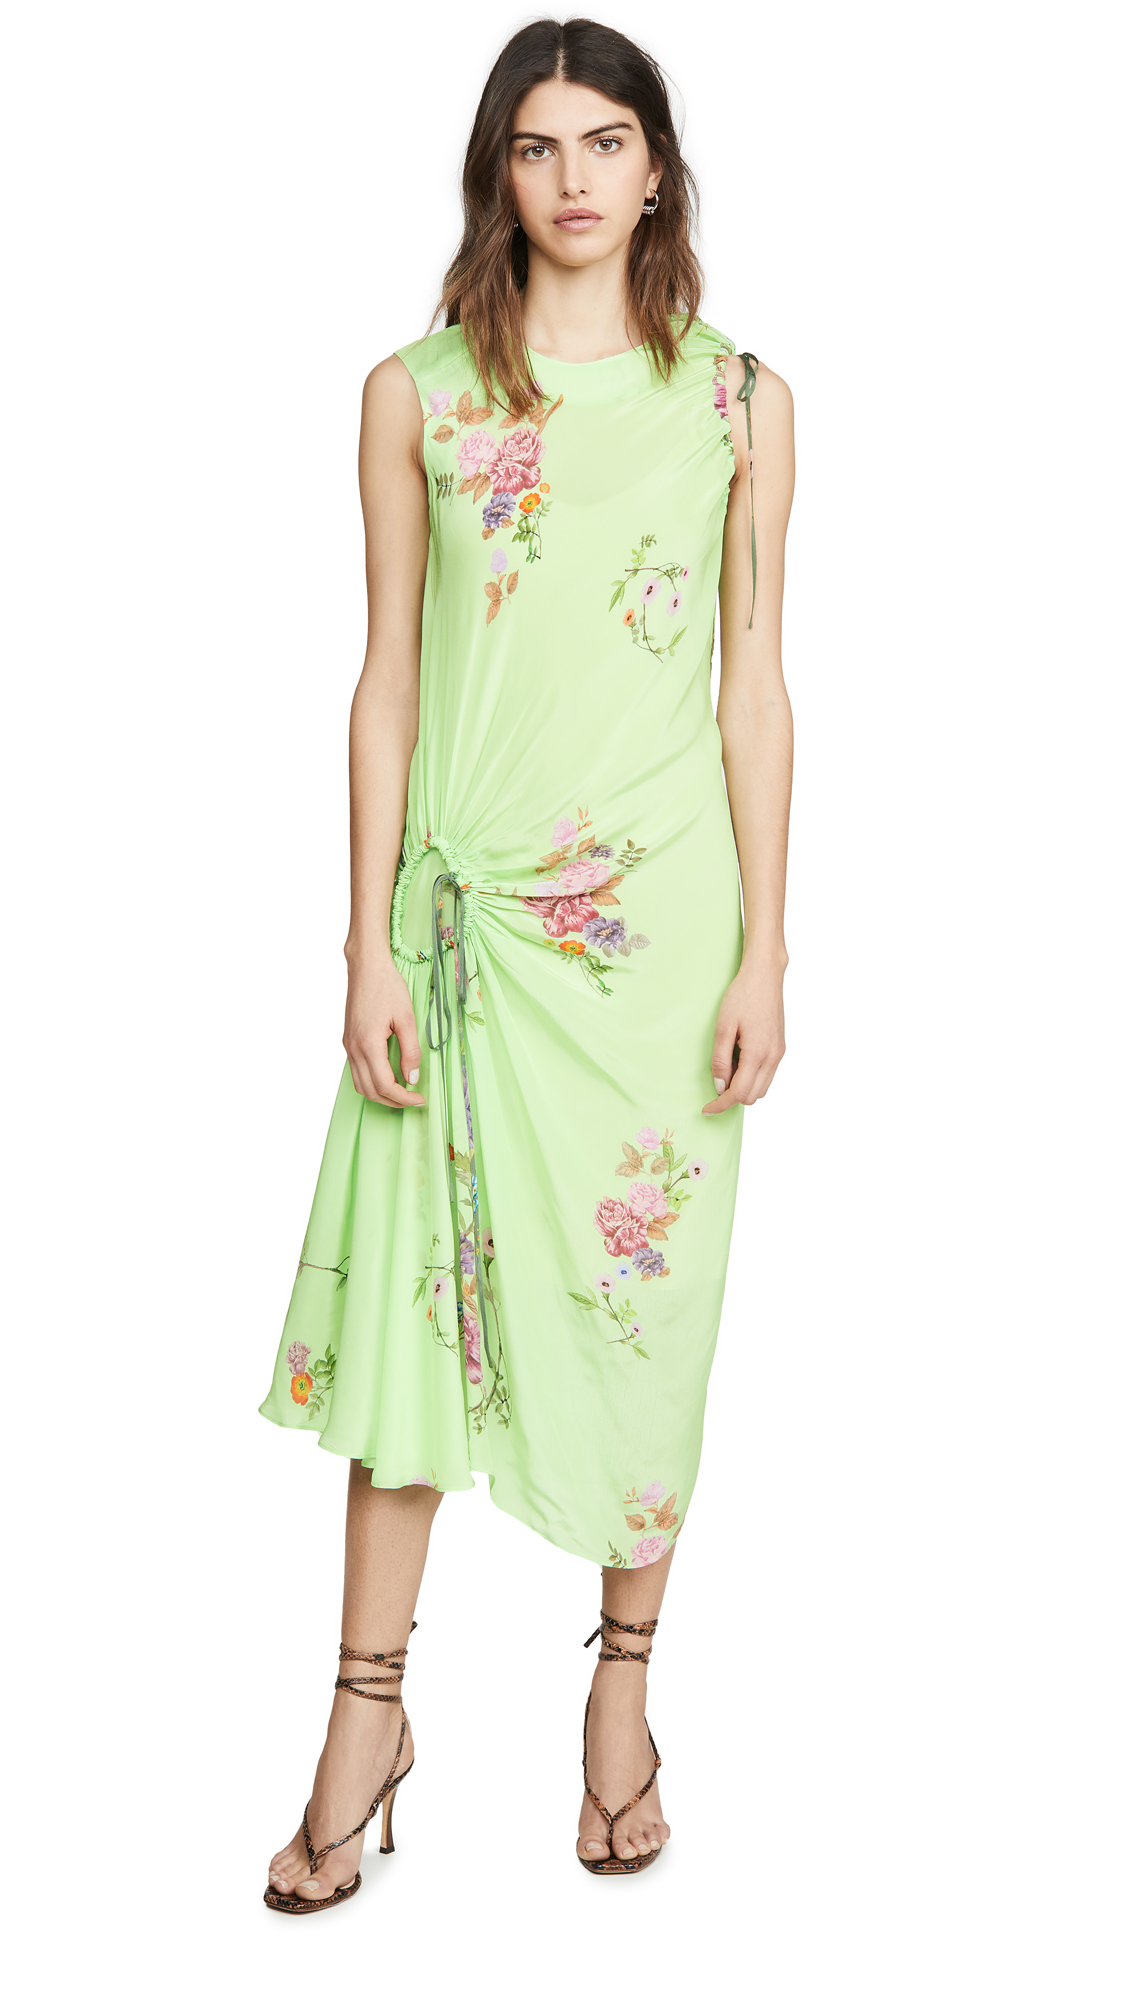 Preen By Thornton Bregazzi Preen Line Aida Dress - 60% Off Sale